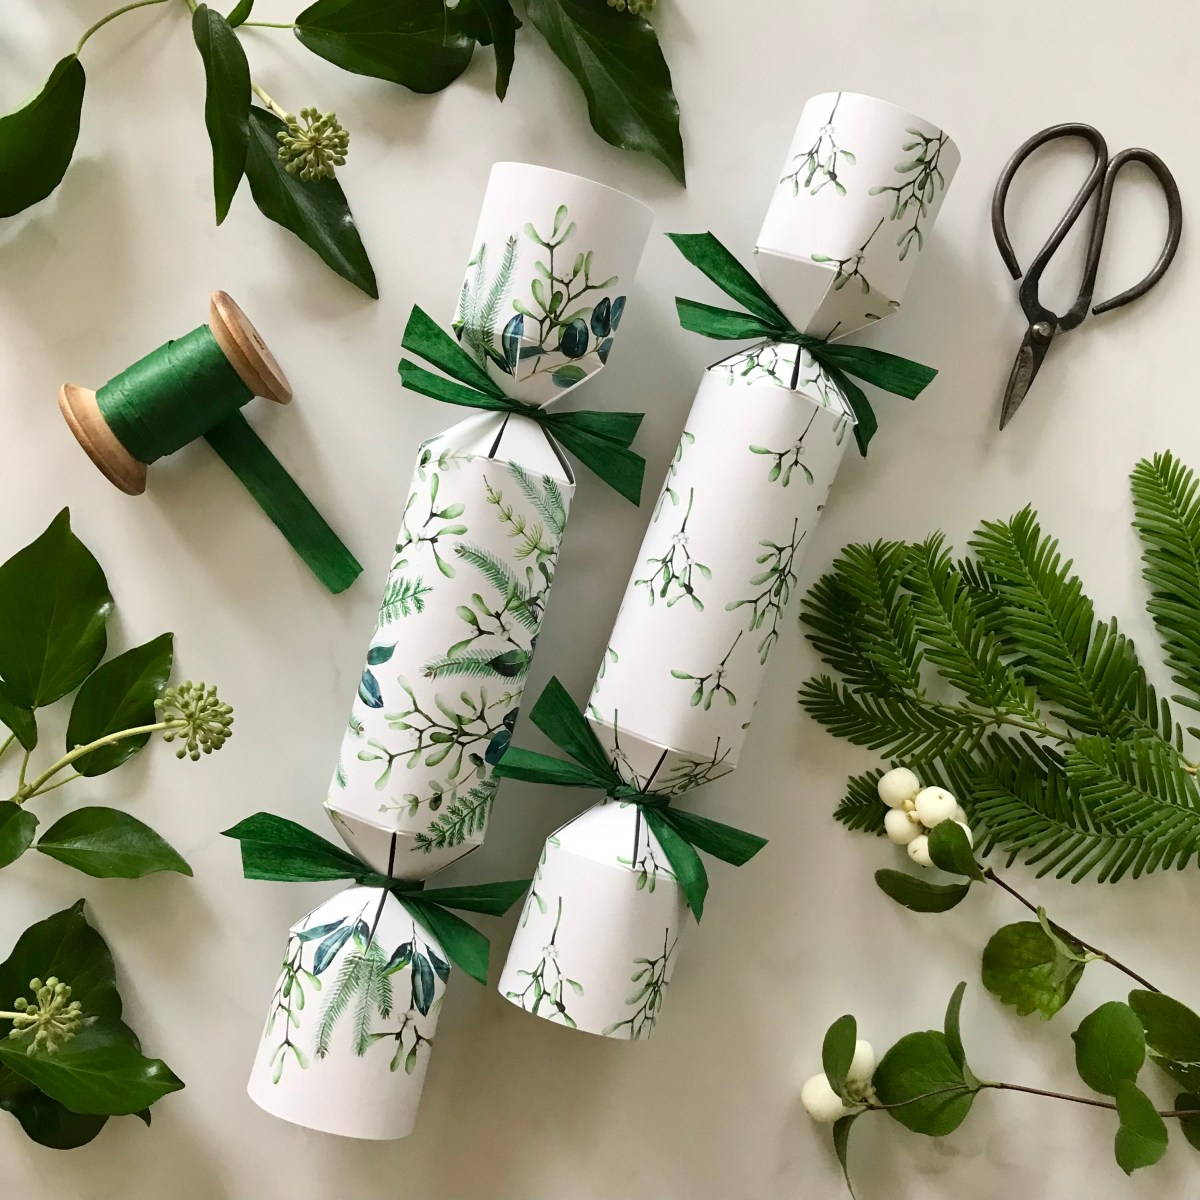 best crackers, best Christmas crackers, 2021, sustainable, eco, environmentally, friendly, green, plastic free, zero waste, recycled, recyclable, christmas, crackers, bon bons, Christmas crackers with seeds inside, crackers with seeds inside, Christmas crackers with seeds, beautiful Christmas crackers, beautiful crackers